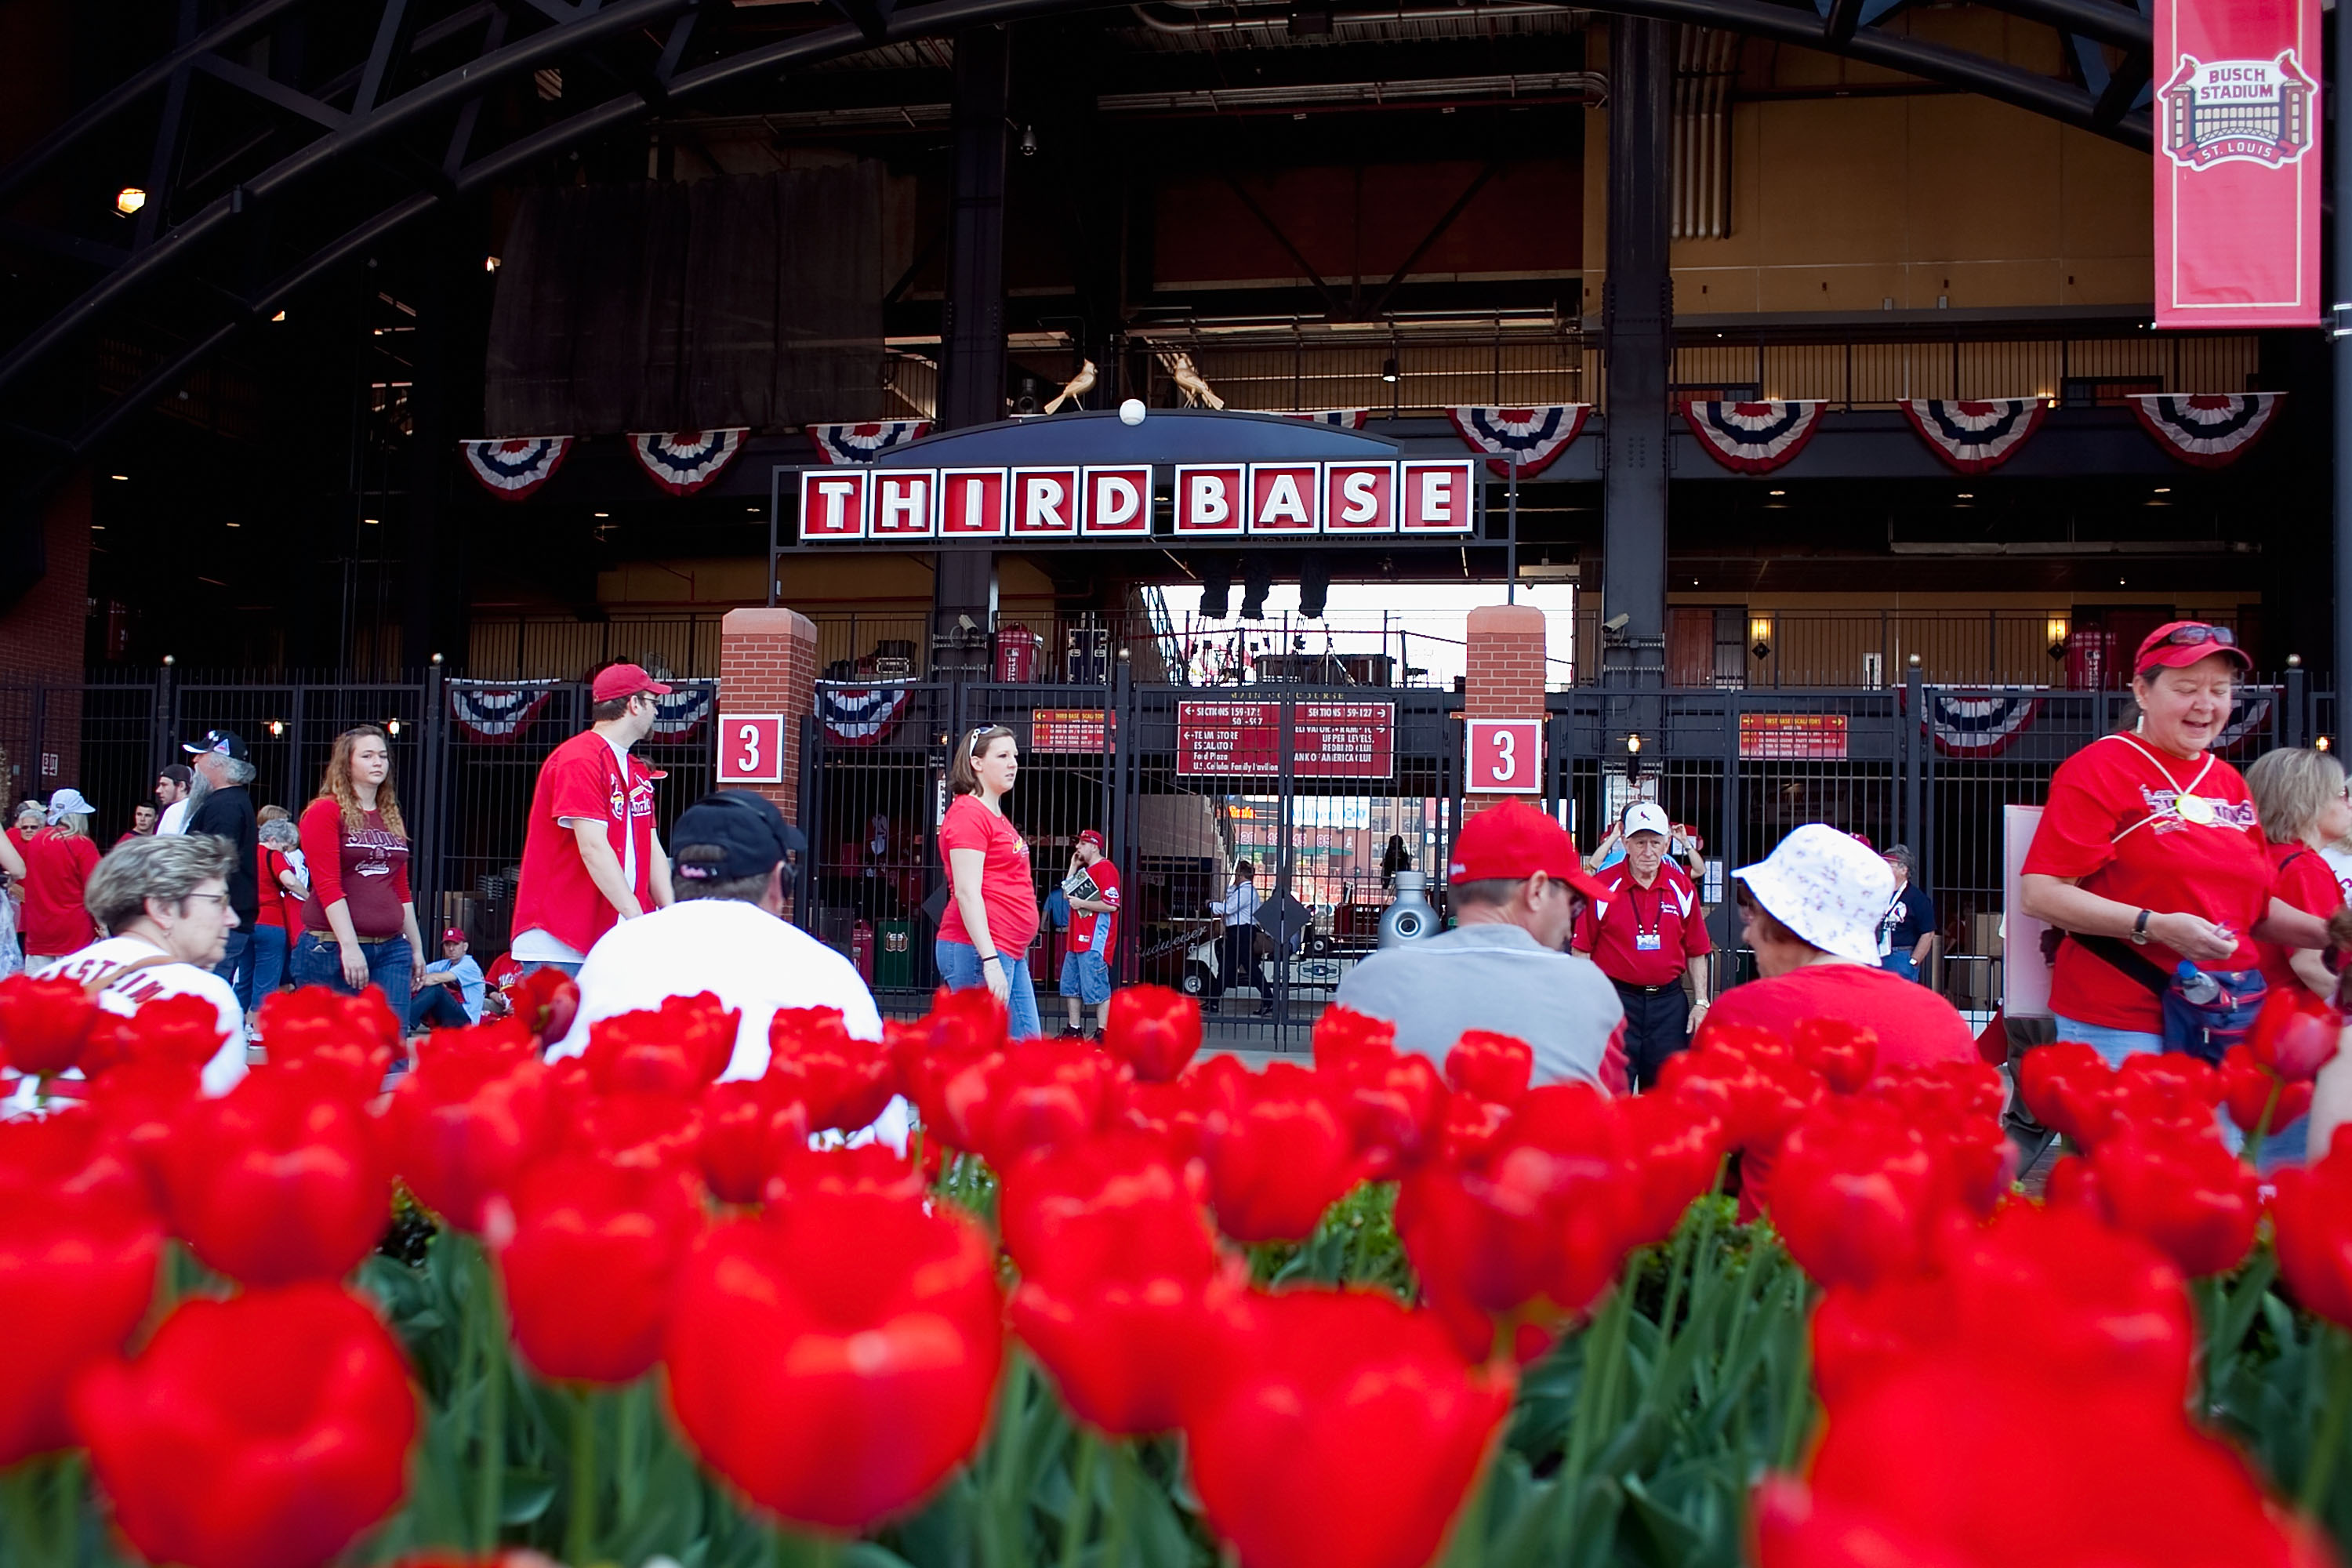 ST. LOUIS, MO - APRIL 12: Fans wait outside Busch Stadium prior to the St. Louis Cardinals playing against the Houston Astros in the home opener at Busch Stadium on April 12, 2010 in St. Louis, Missouri.  (Photo by Dilip Vishwanat/Getty Images)